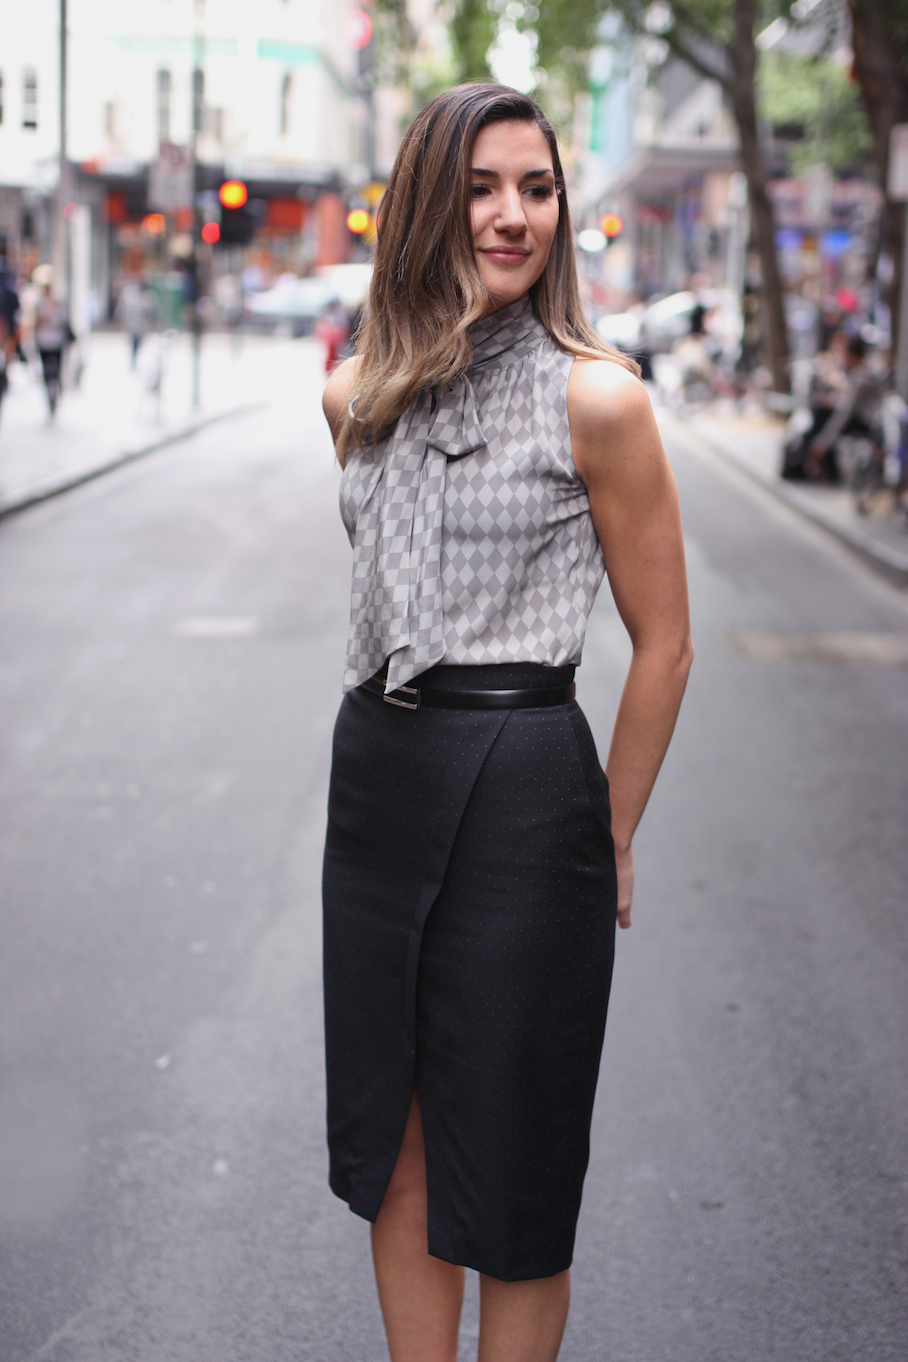 """Vic: Adele Sienna, Store Manager, Little Bourke St. """"I'm wearing work wear but usually outside of work  my style is edgier. A lot of black on black."""" Photo: <a href=""""http://www.marythamphotography.weebly.com/"""" target=""""_blank"""">Mary Tham </a>"""